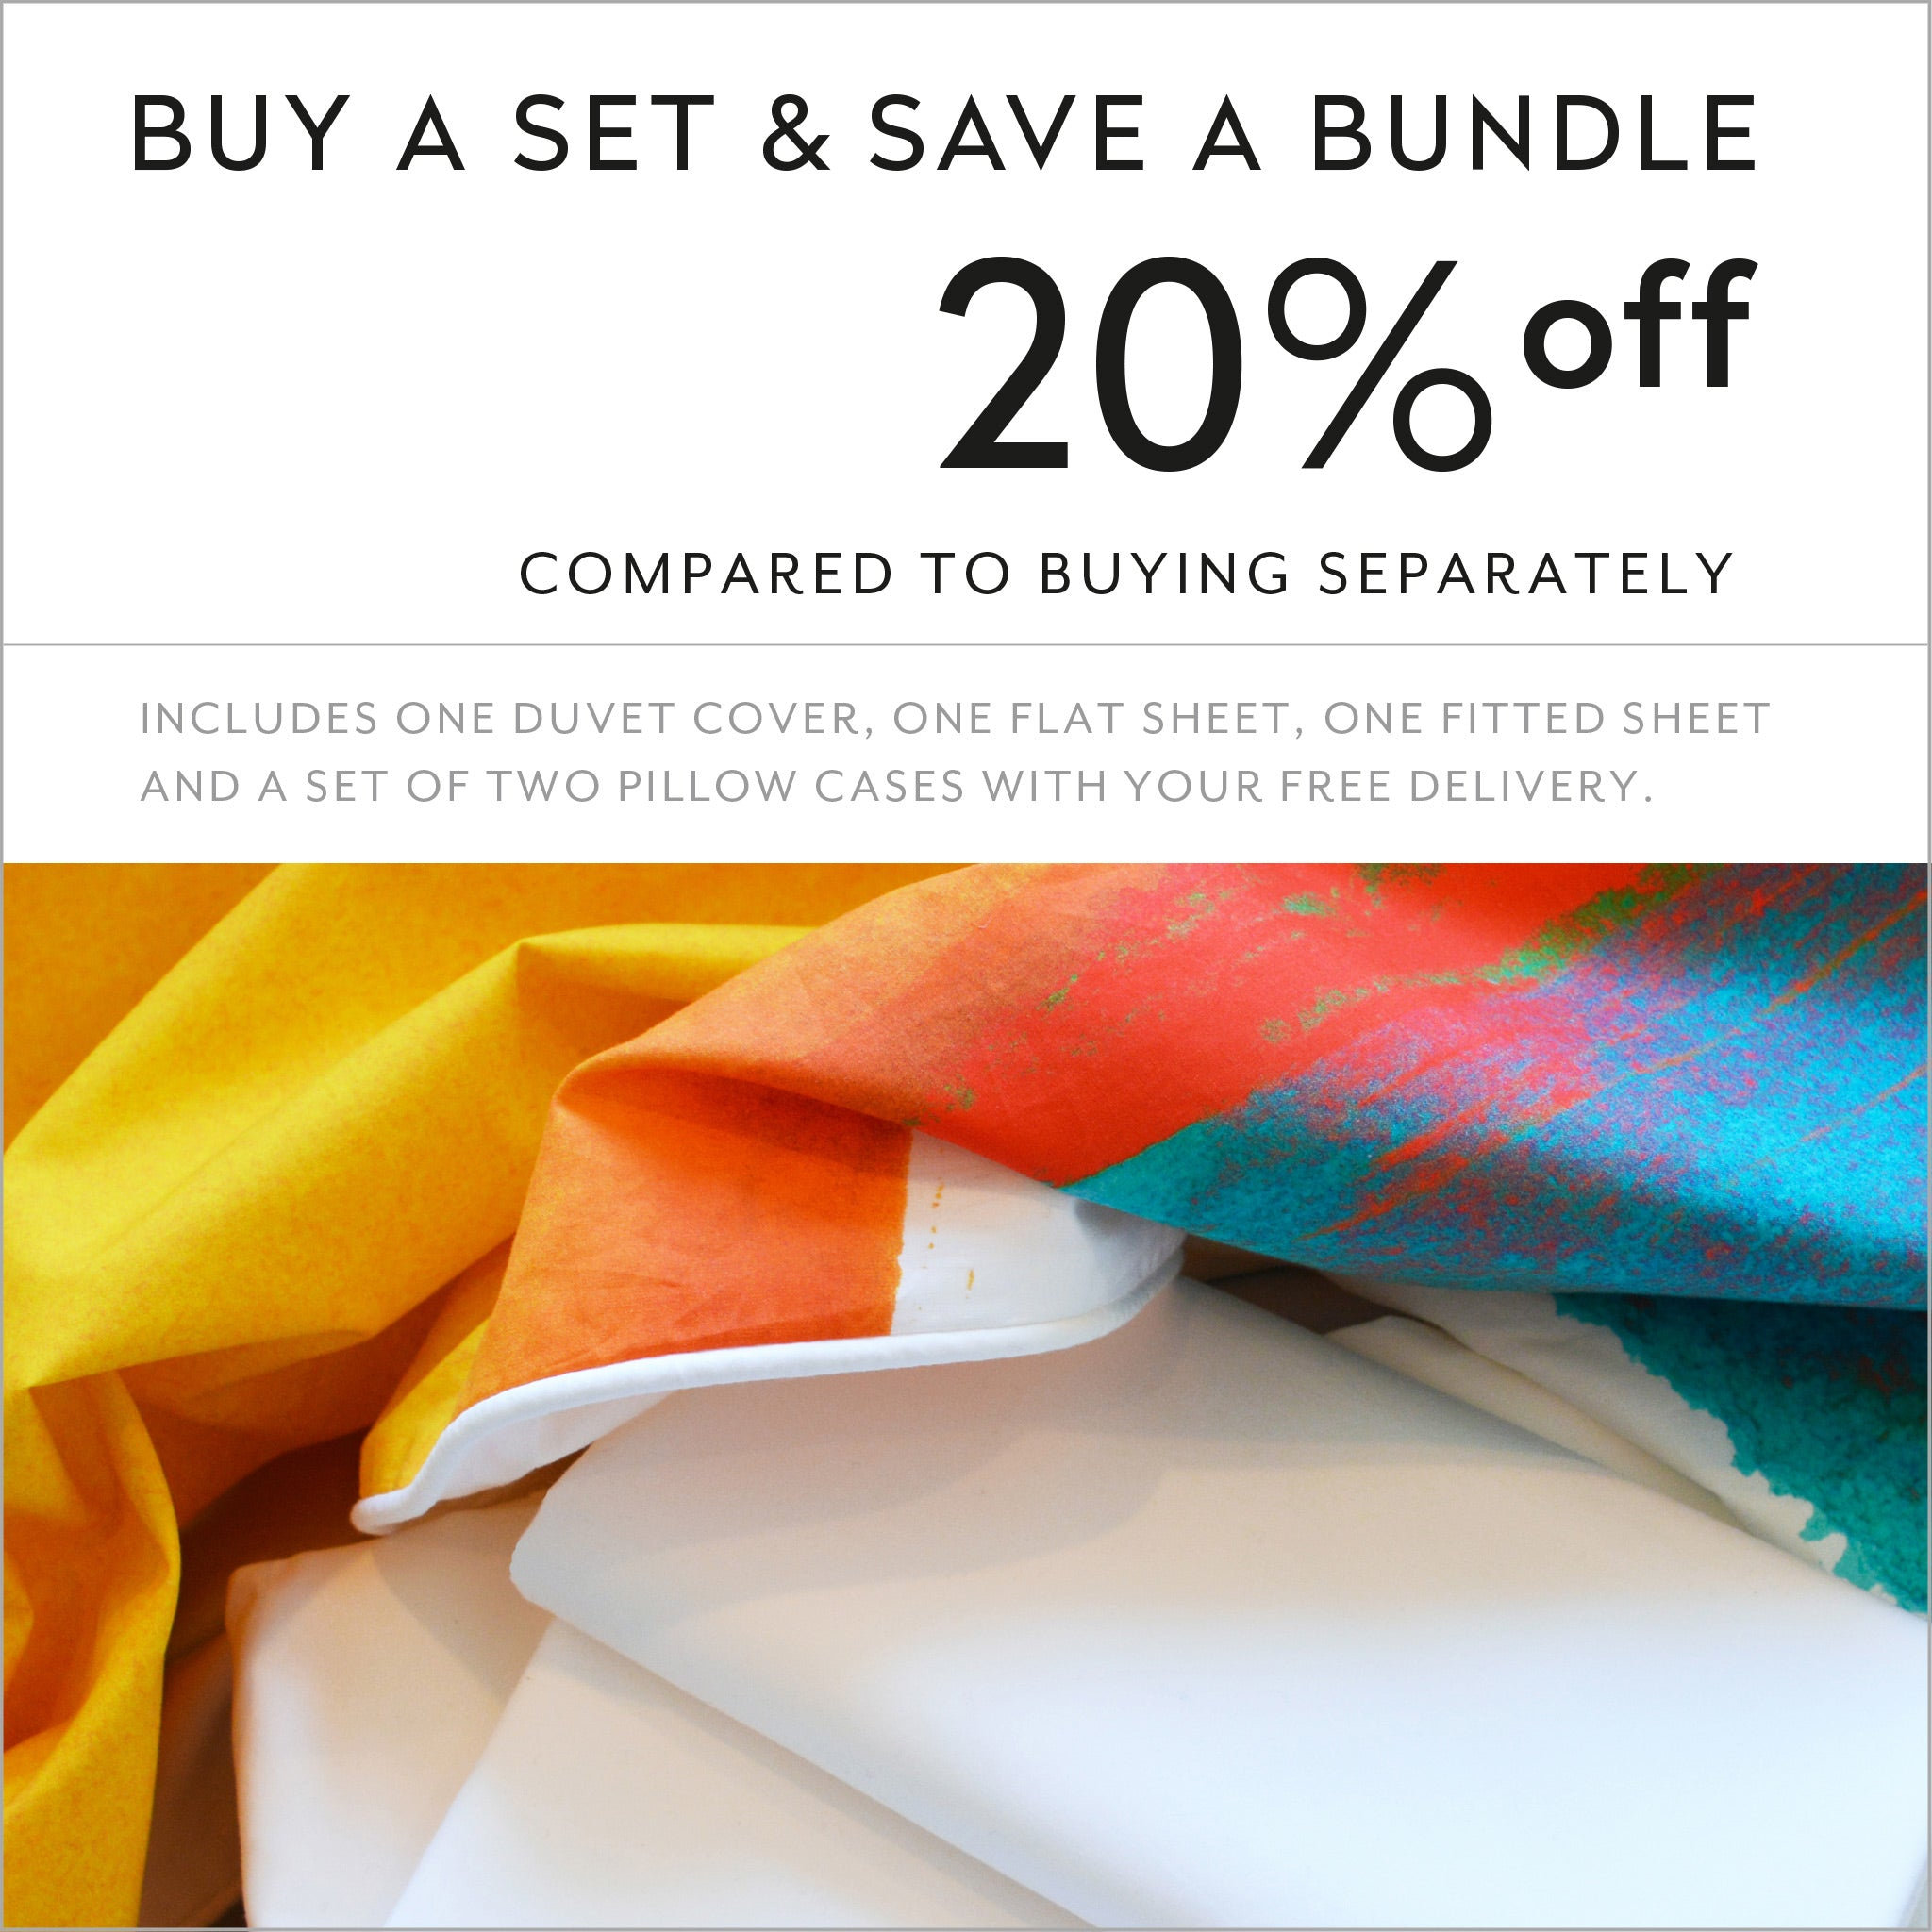 Buy a set and save 20% compared to buying separately cotton sheets and duvet cover design Moroccan Monday